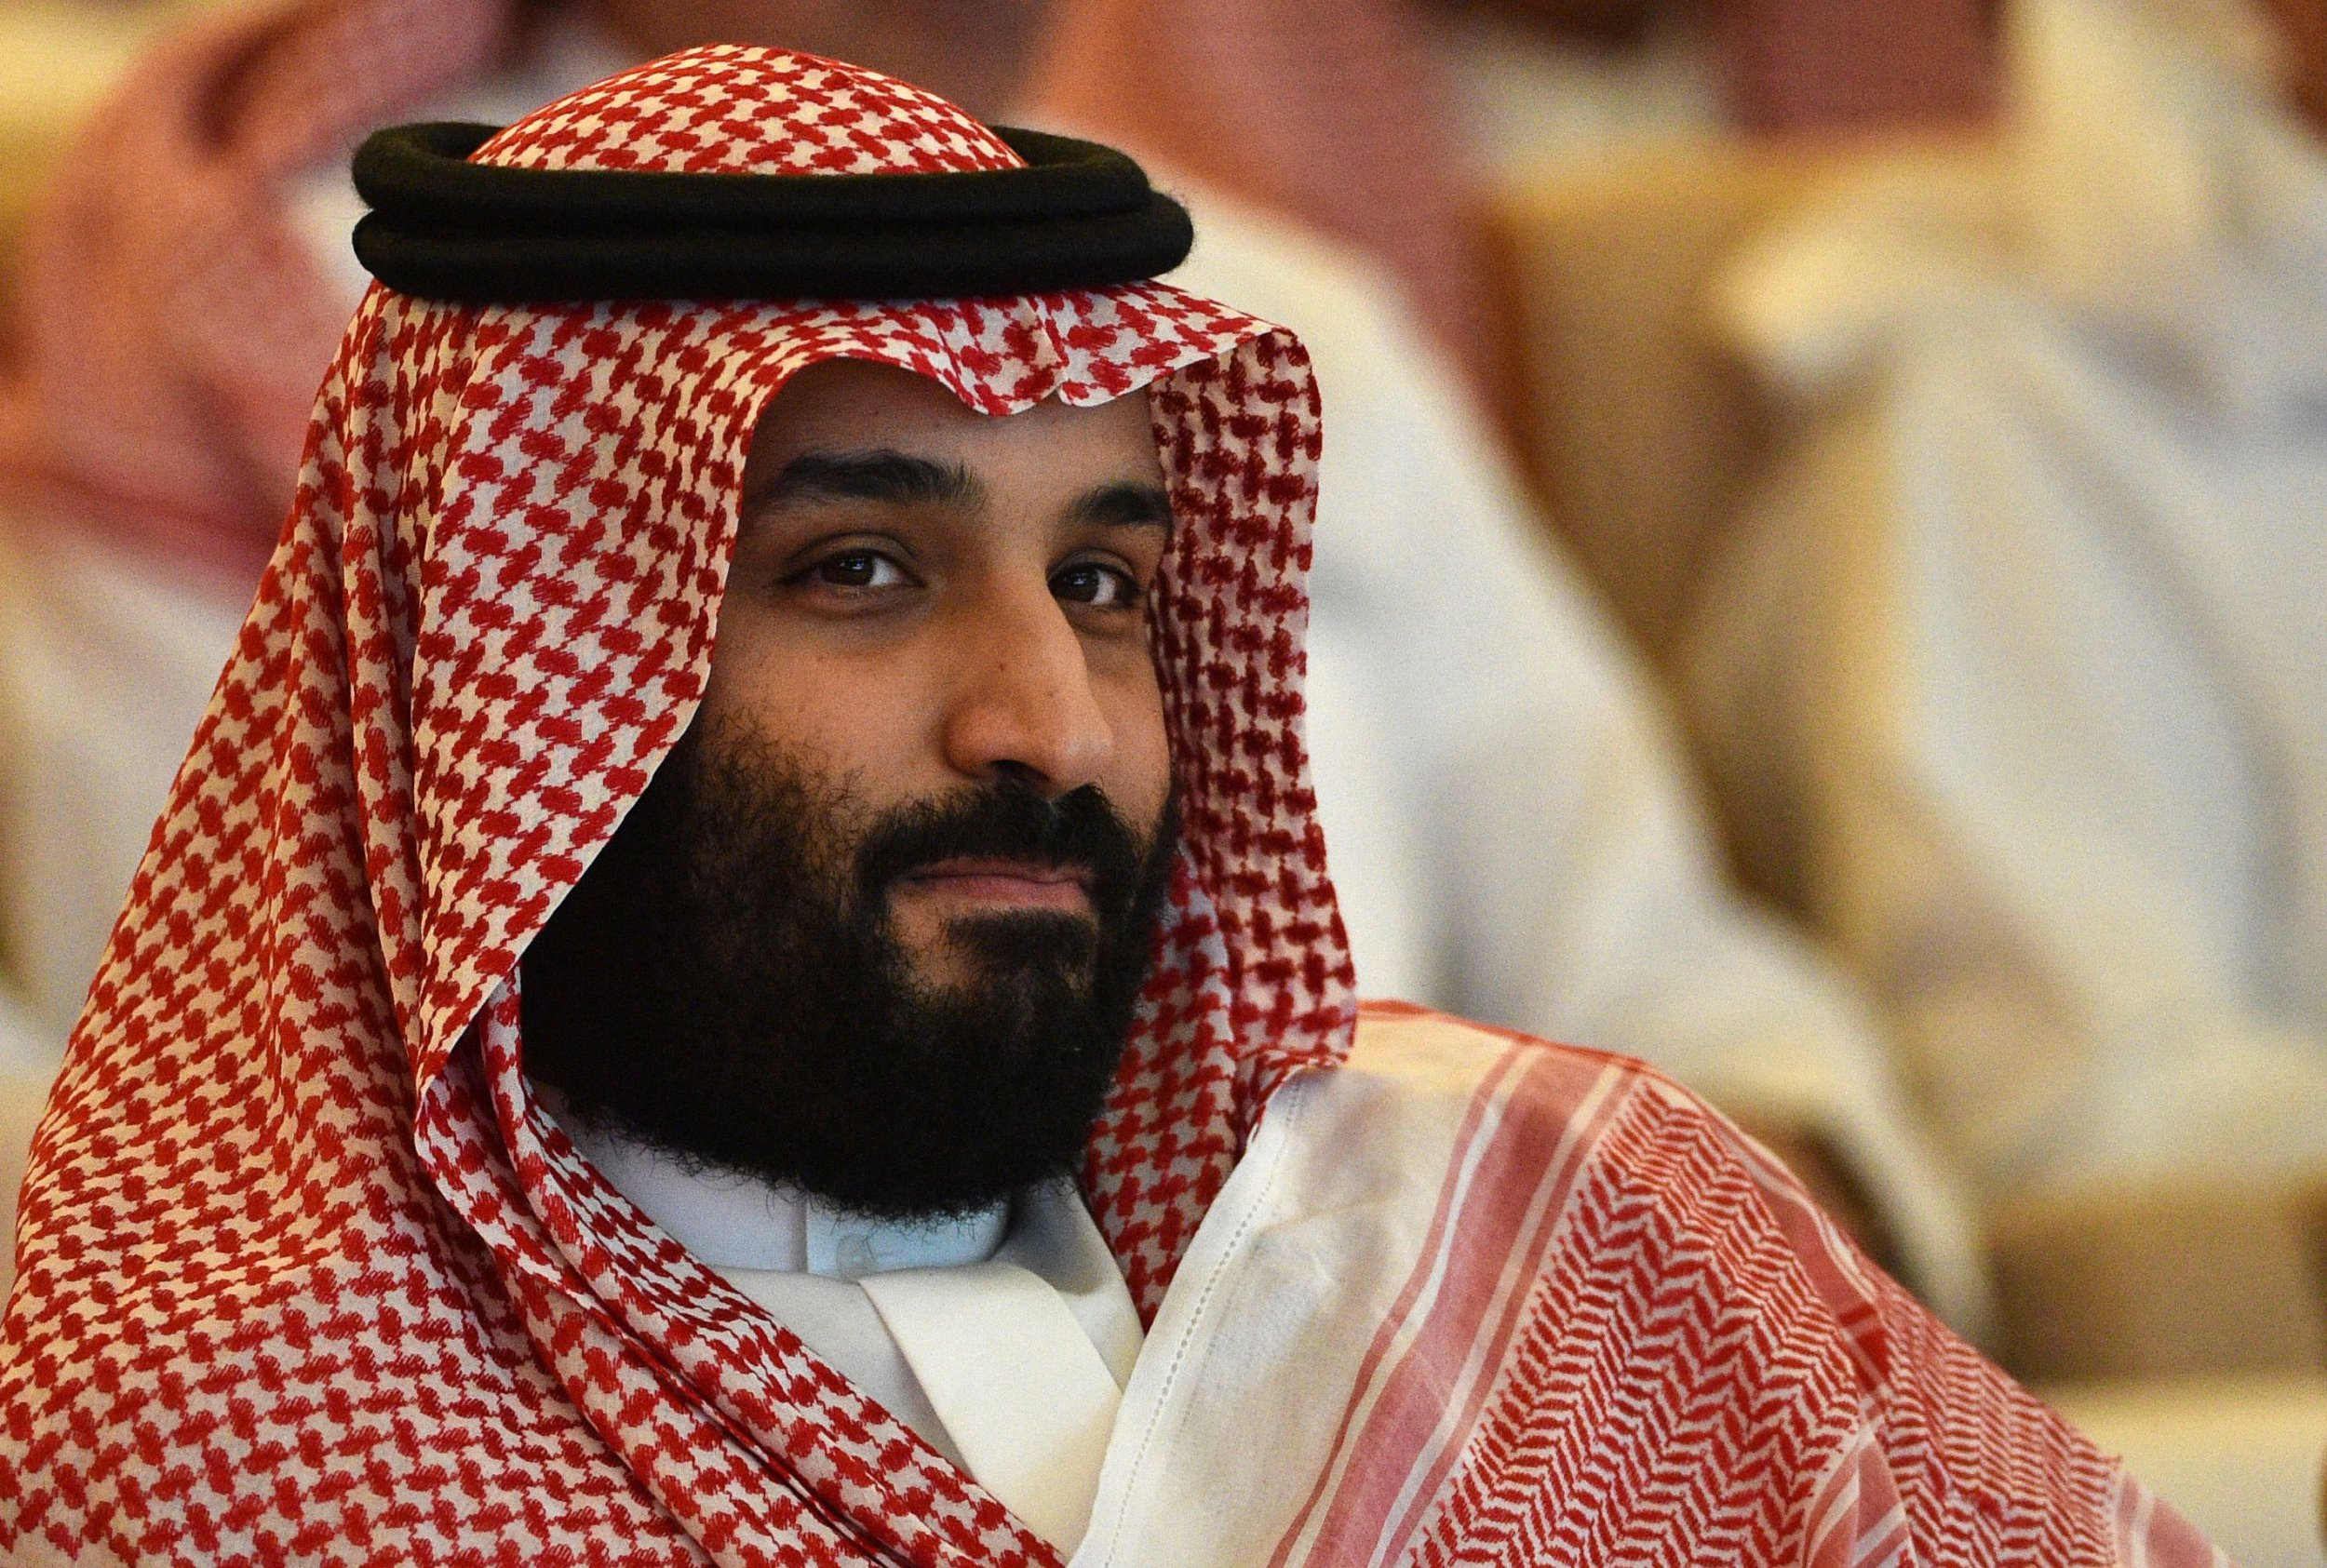 TOPSHOT - Saudi Crown Prince Mohammed bin Salman attends the Future Investment Initiative (FII) conference in the Saudi capital Riyadh on October 23, 2018. - Saudi Arabia is hosting the key investment summit overshadowed by the killing of critic Jamal Khashoggi that has prompted a wave of policymakers and corporate giants to withdraw. (Photo by FAYEZ NURELDINE / AFP) (Photo credit should read FAYEZ NURELDINE/AFP/Getty Images)